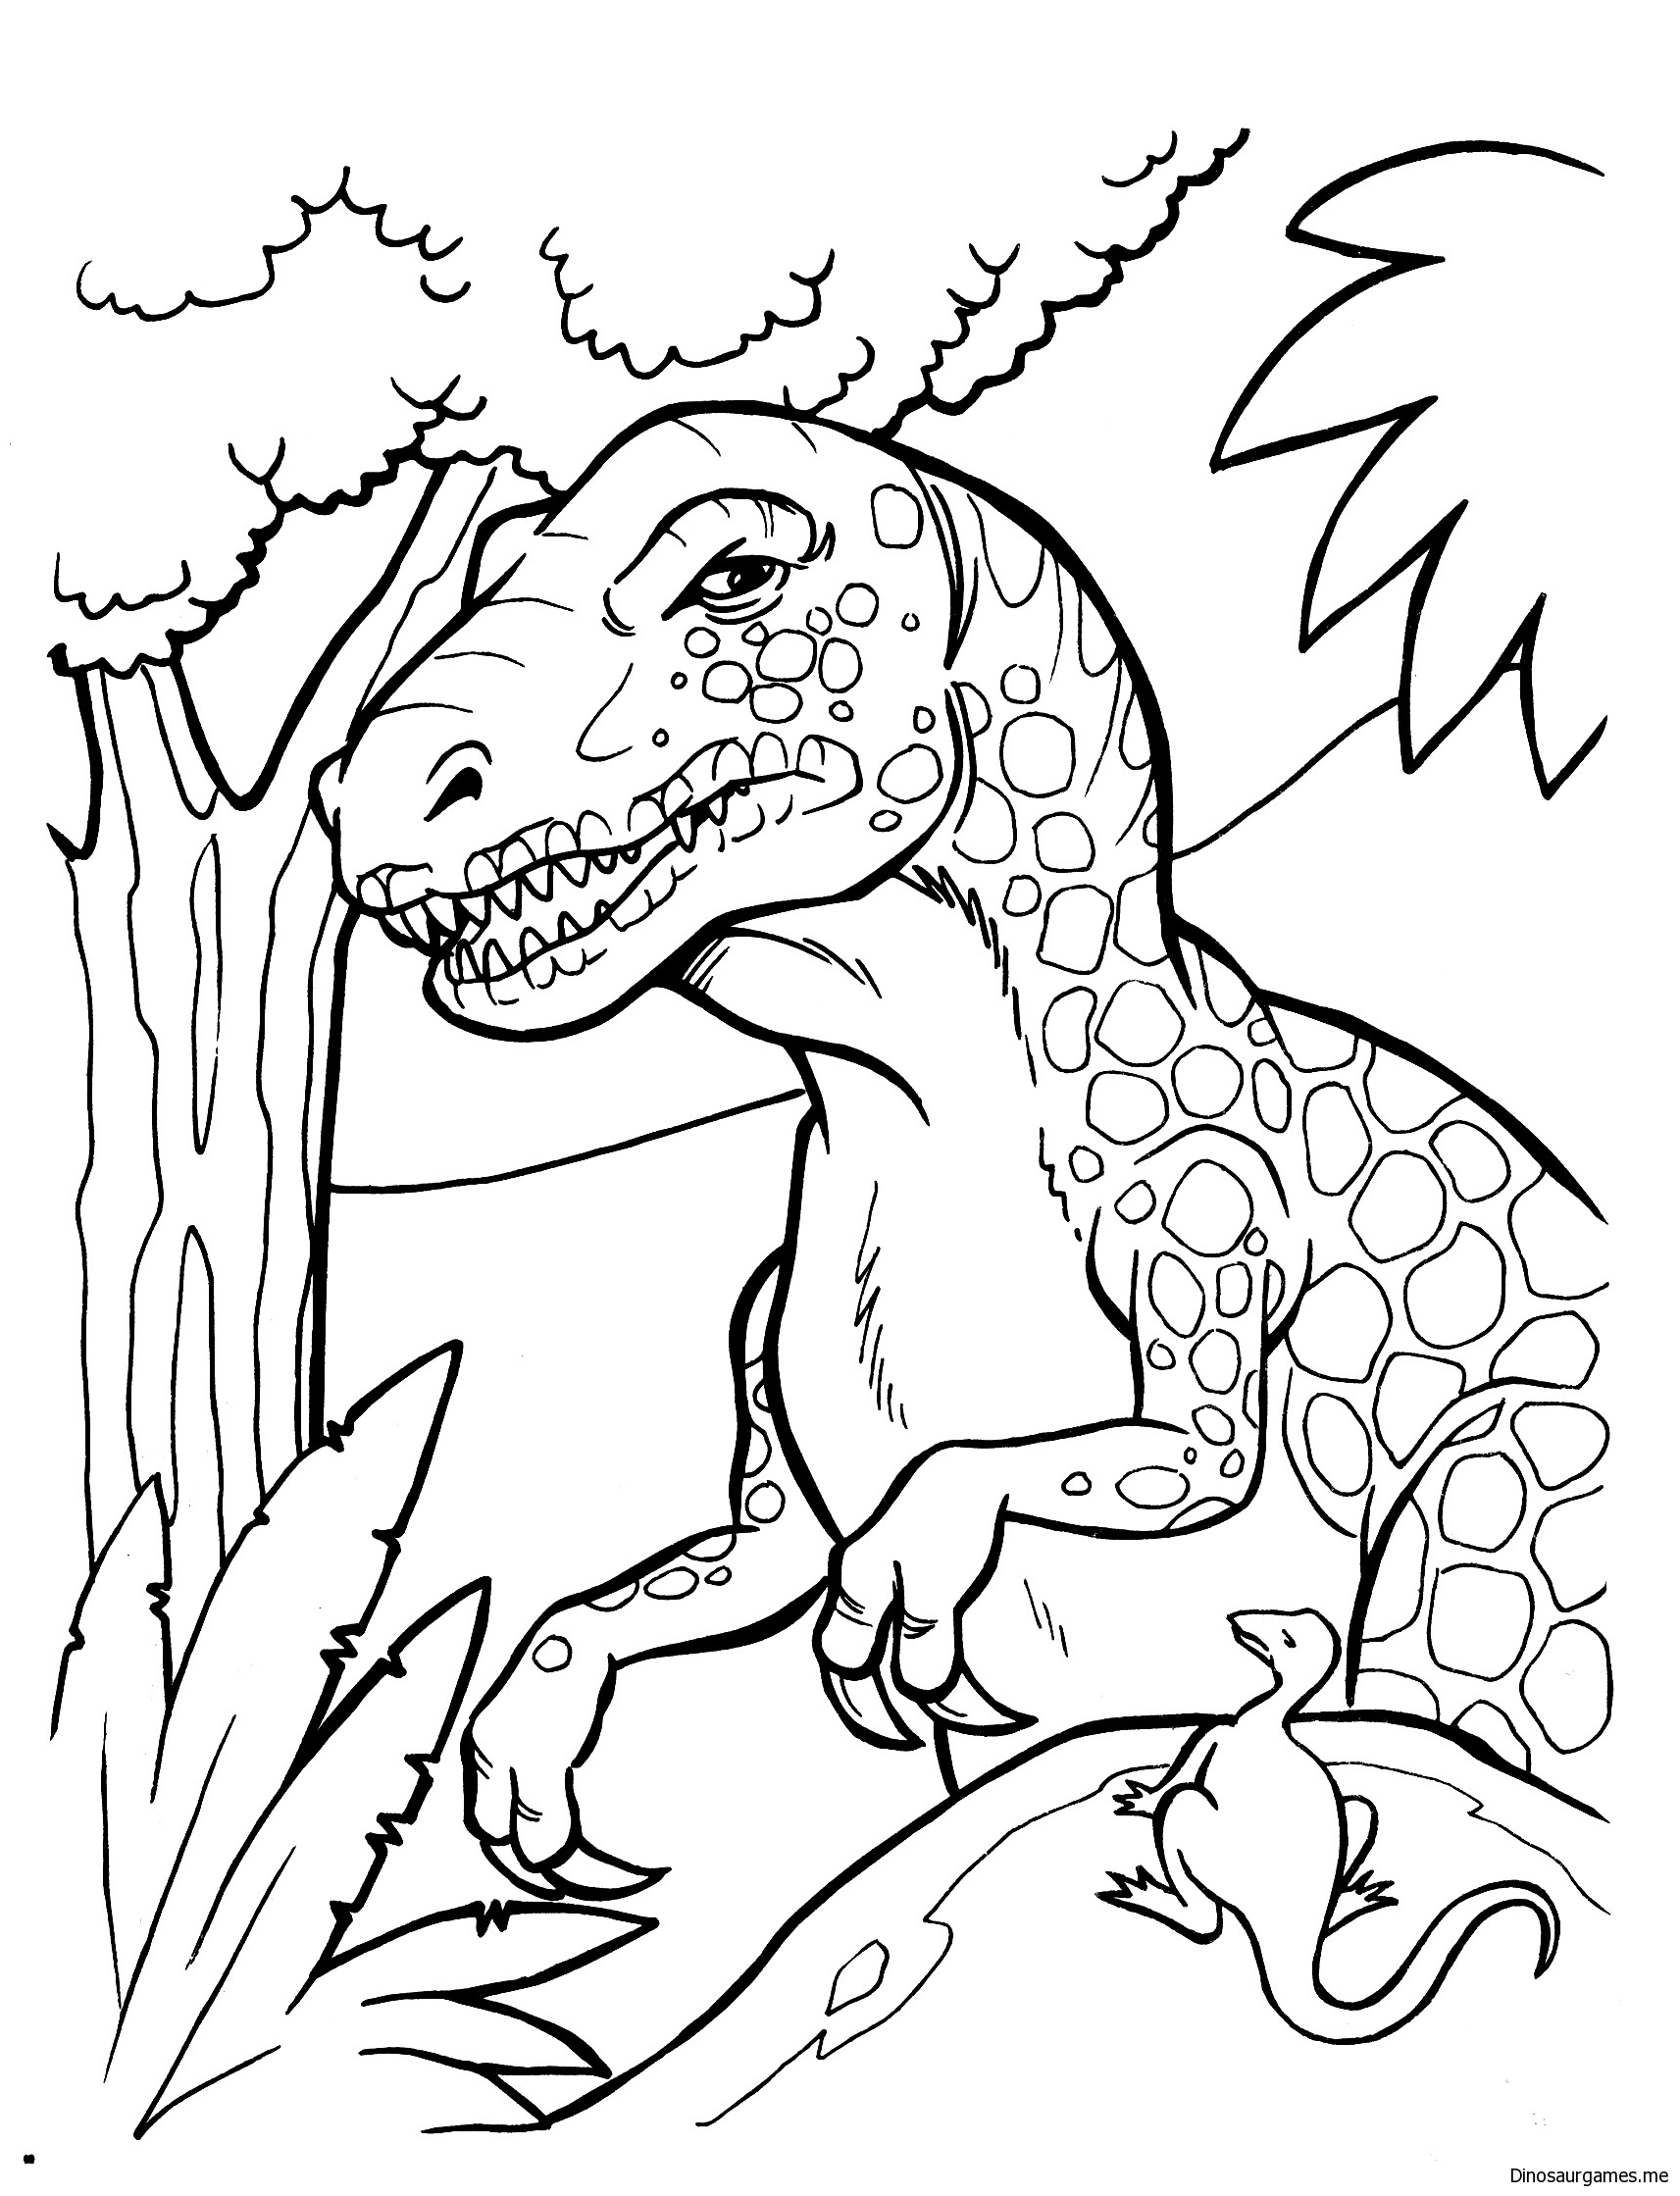 Tyrannosaur Rex Family Coloring Page